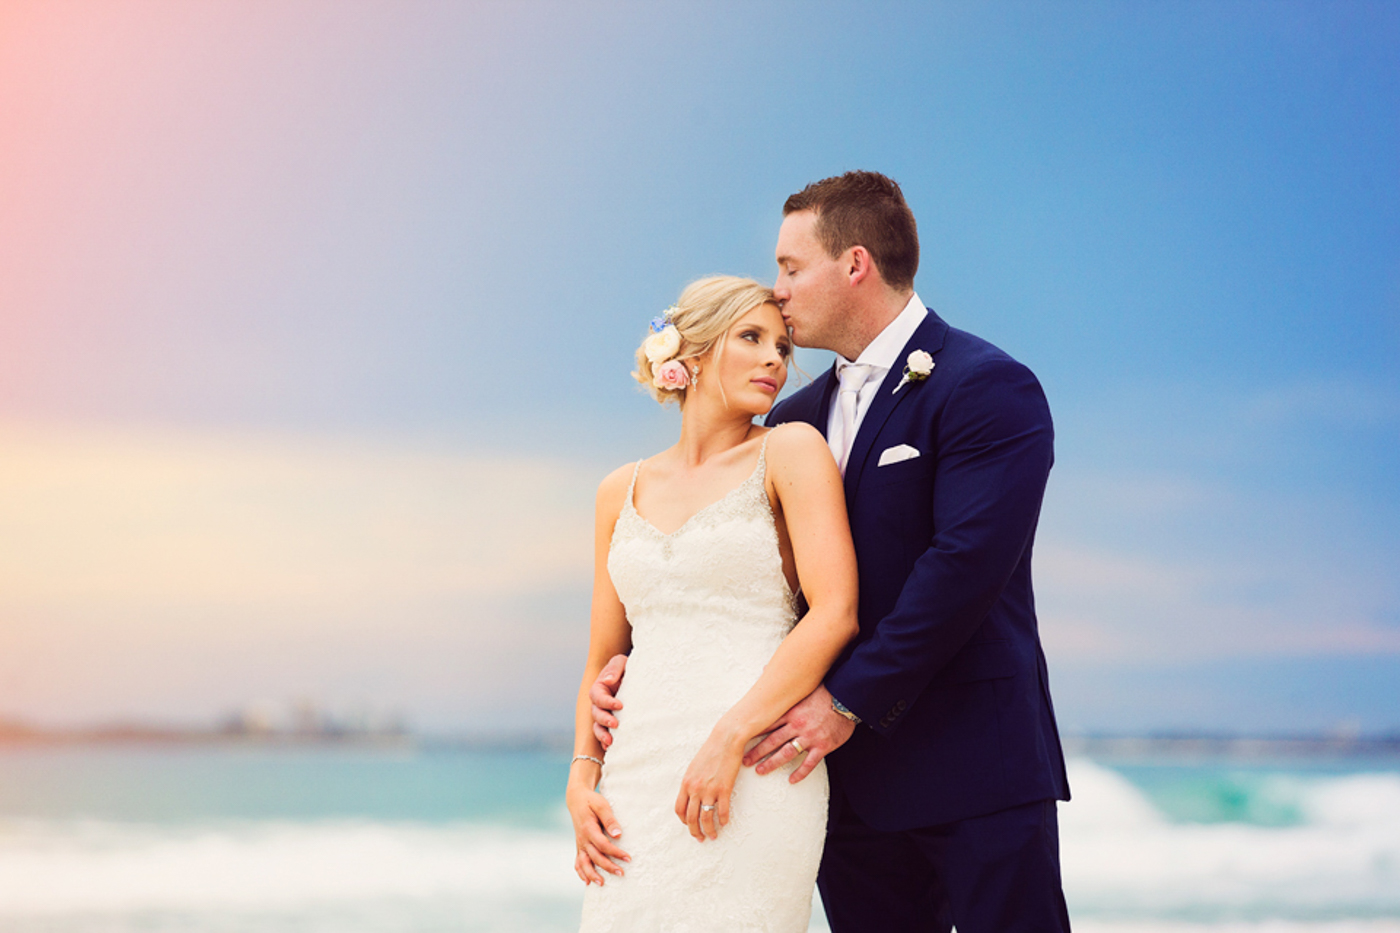 Noosa Wedding Photos on the Beach at Sunset